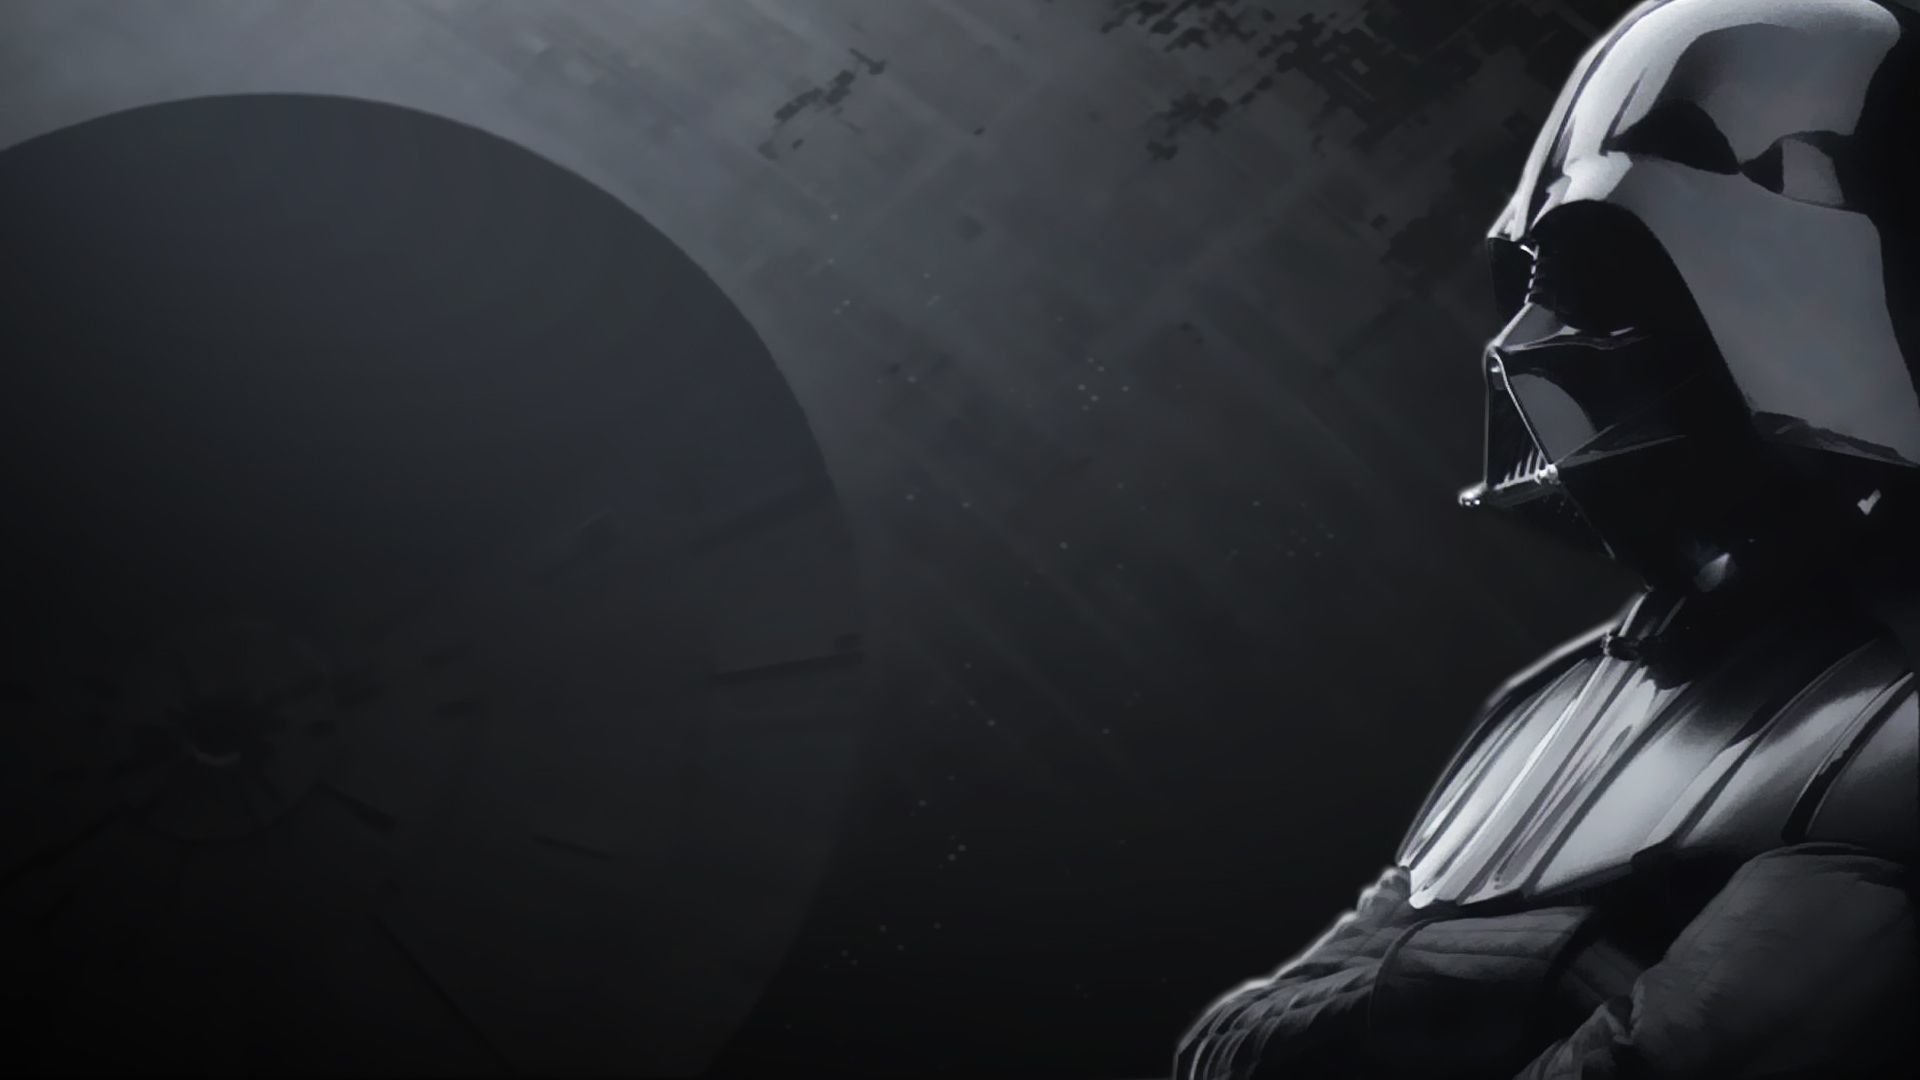 Res 1920x1080 Full Hd P Darth Vader Wallpapers Hd Desktop Backgrounds Darth Vader Wallpaper Darth Vader Star Wars Awesome